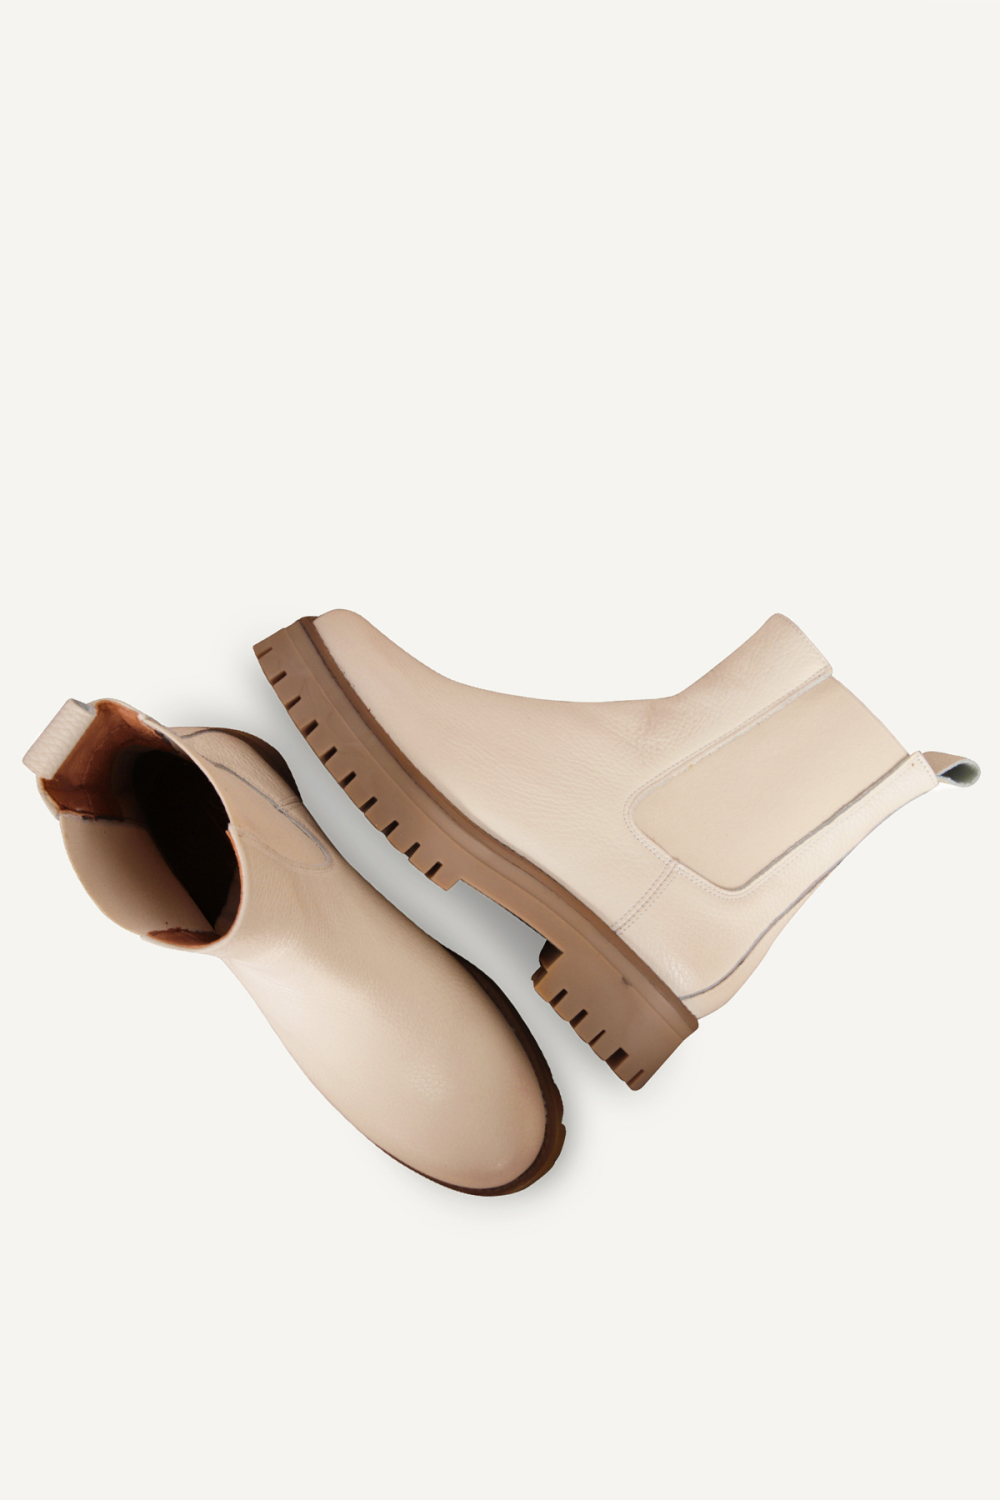 Shoecolate chelsea boots Offwhite 8.20.08.284.01